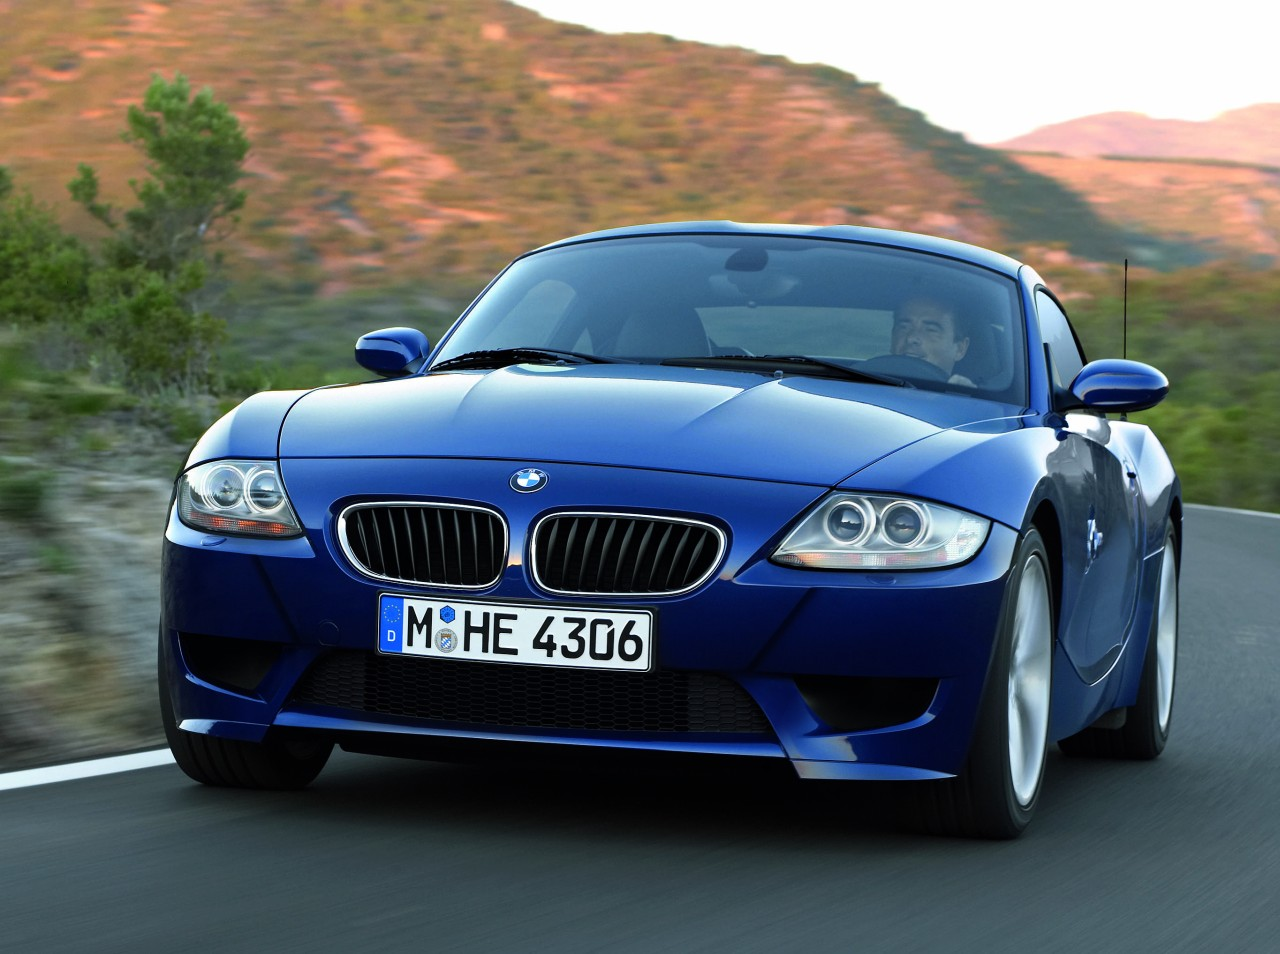 Used Cars Portland >> Bmw cars usa |Cars Wallpapers And Pictures car images,car pics,carPicture